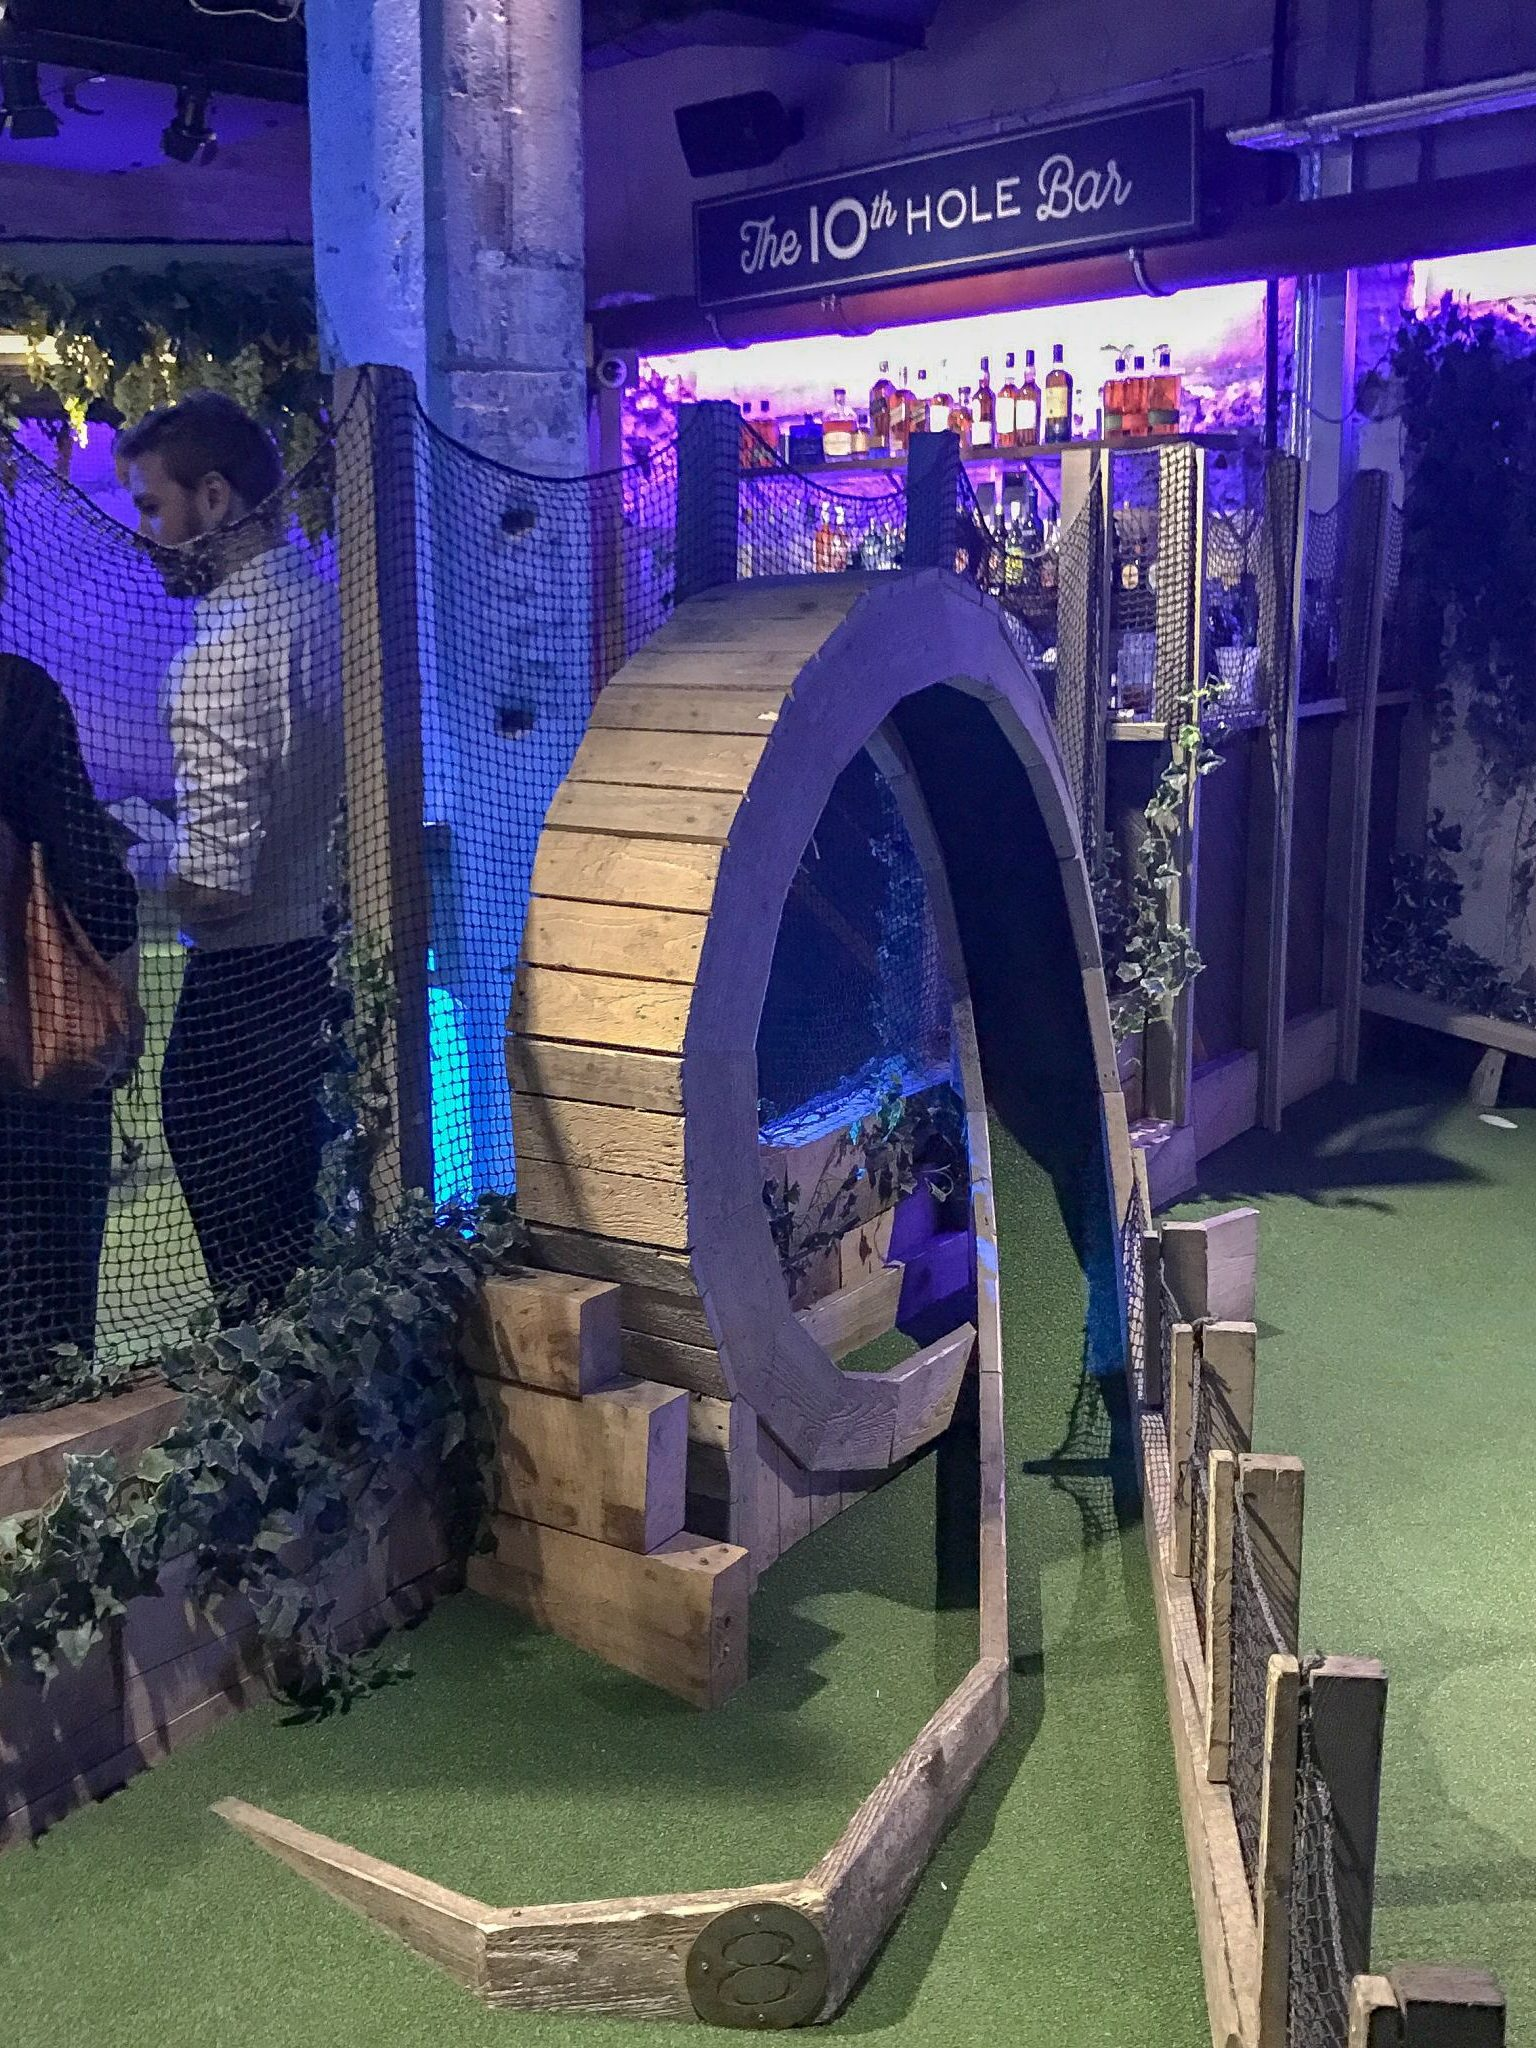 Swingers crazy golf